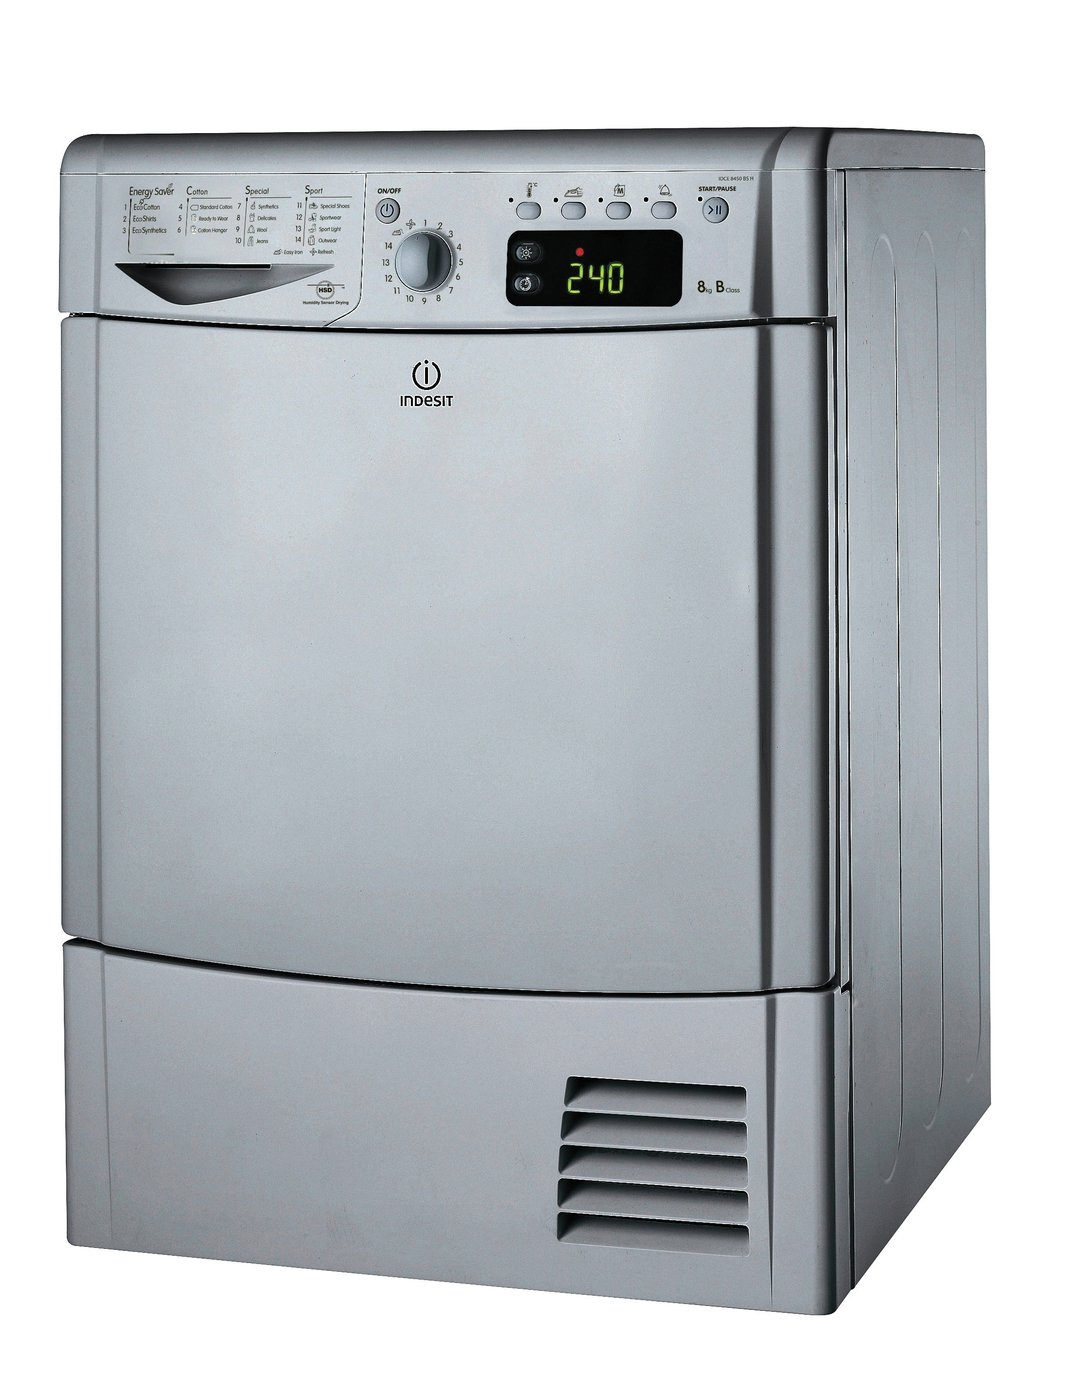 Indesit Ecotime IDCE8450BSh Tumble Dryer Silver + Installation